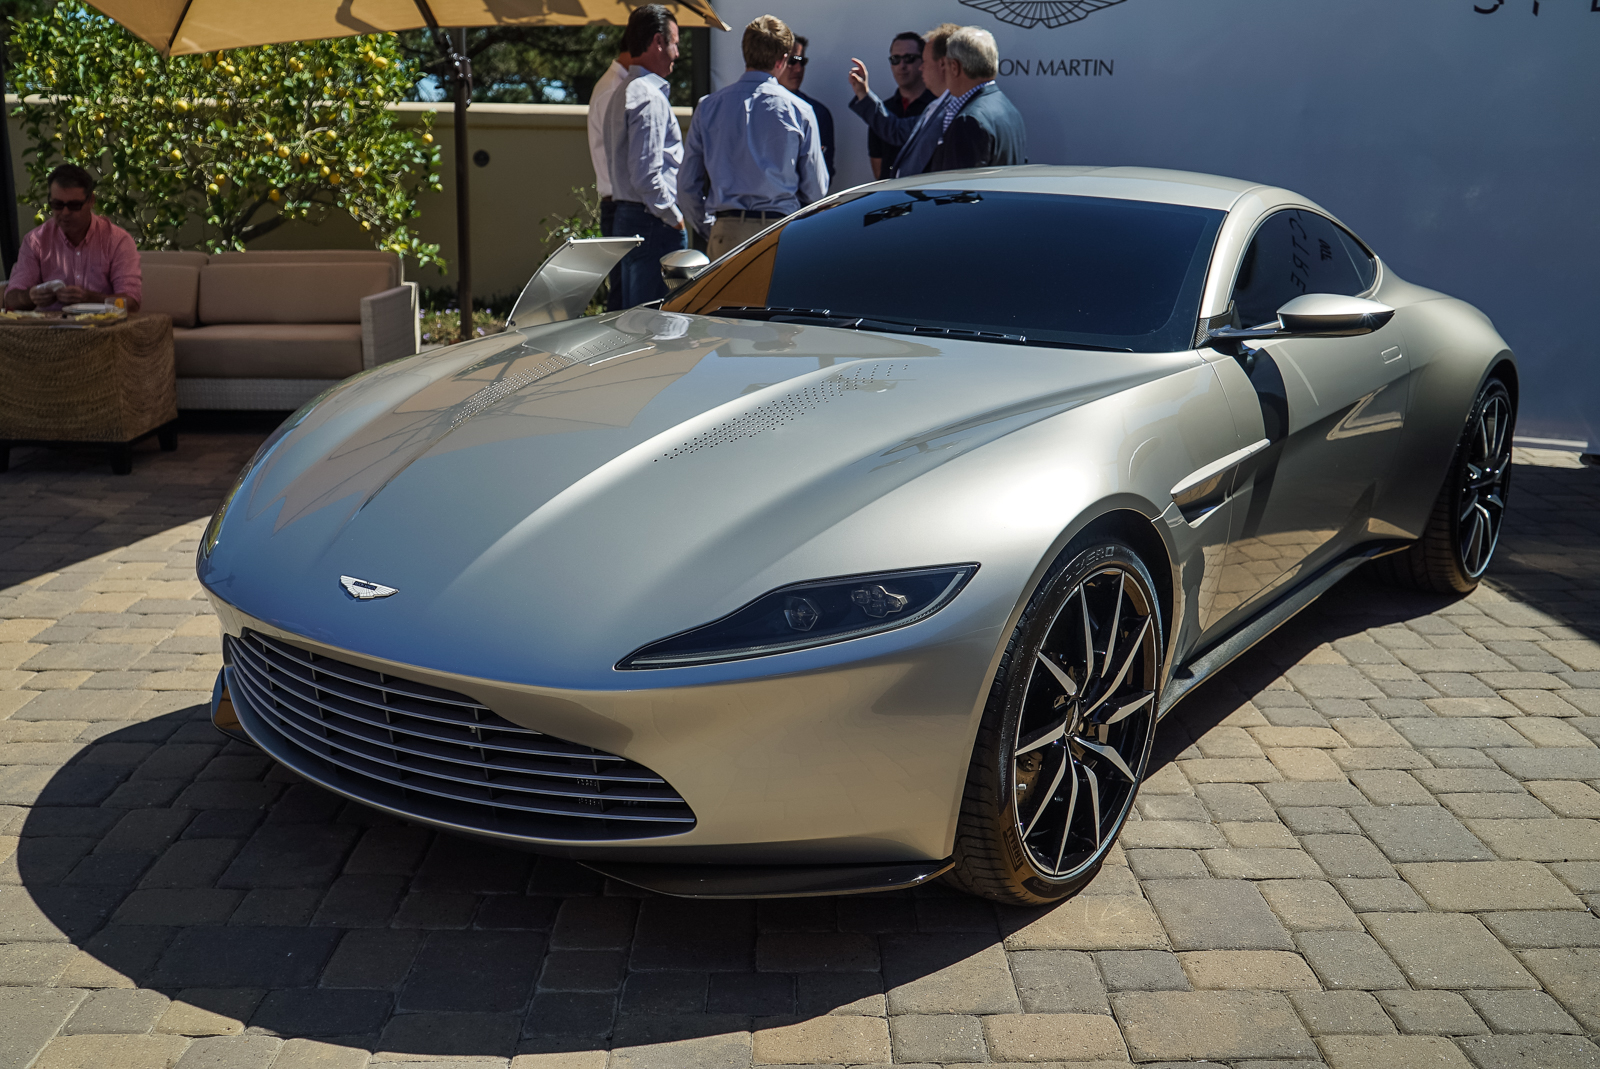 watch james bond's new aston martin do donuts » autoguide news